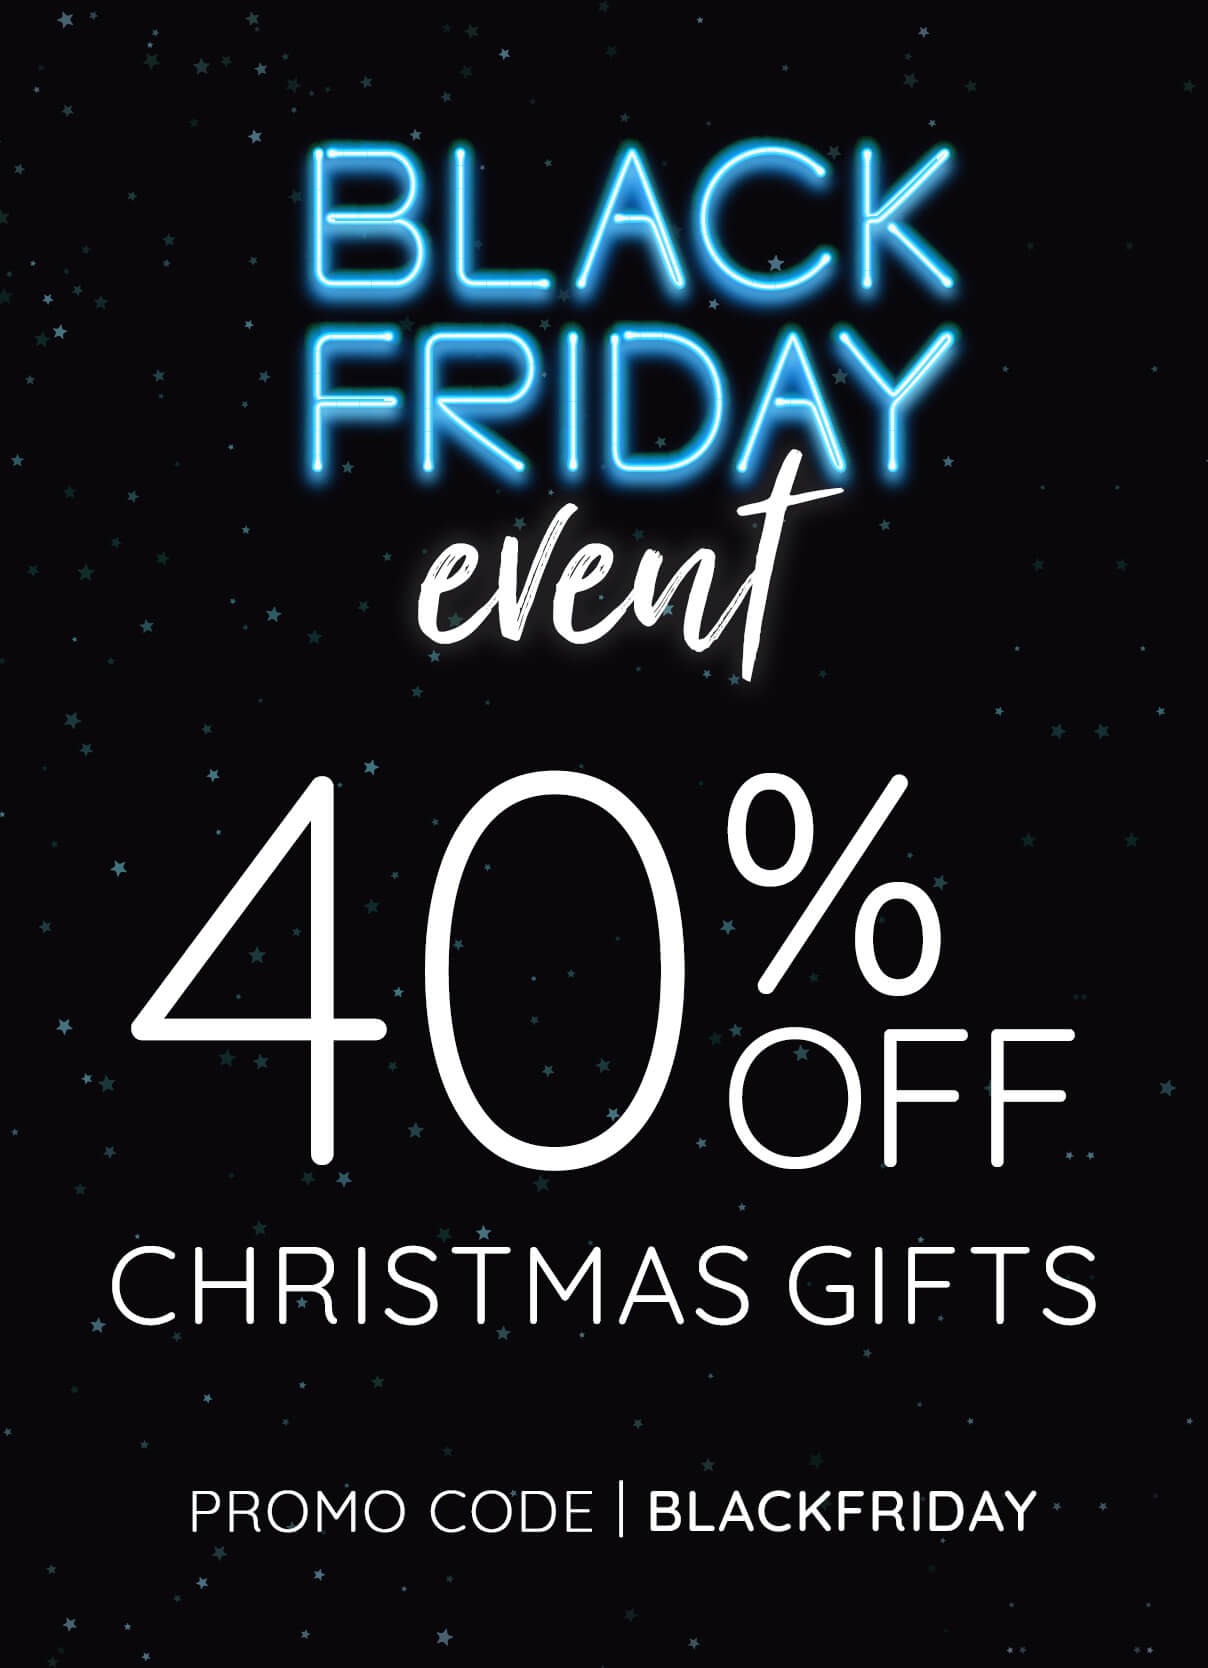 Black Friday Event - 40% Off Christmas Gifts